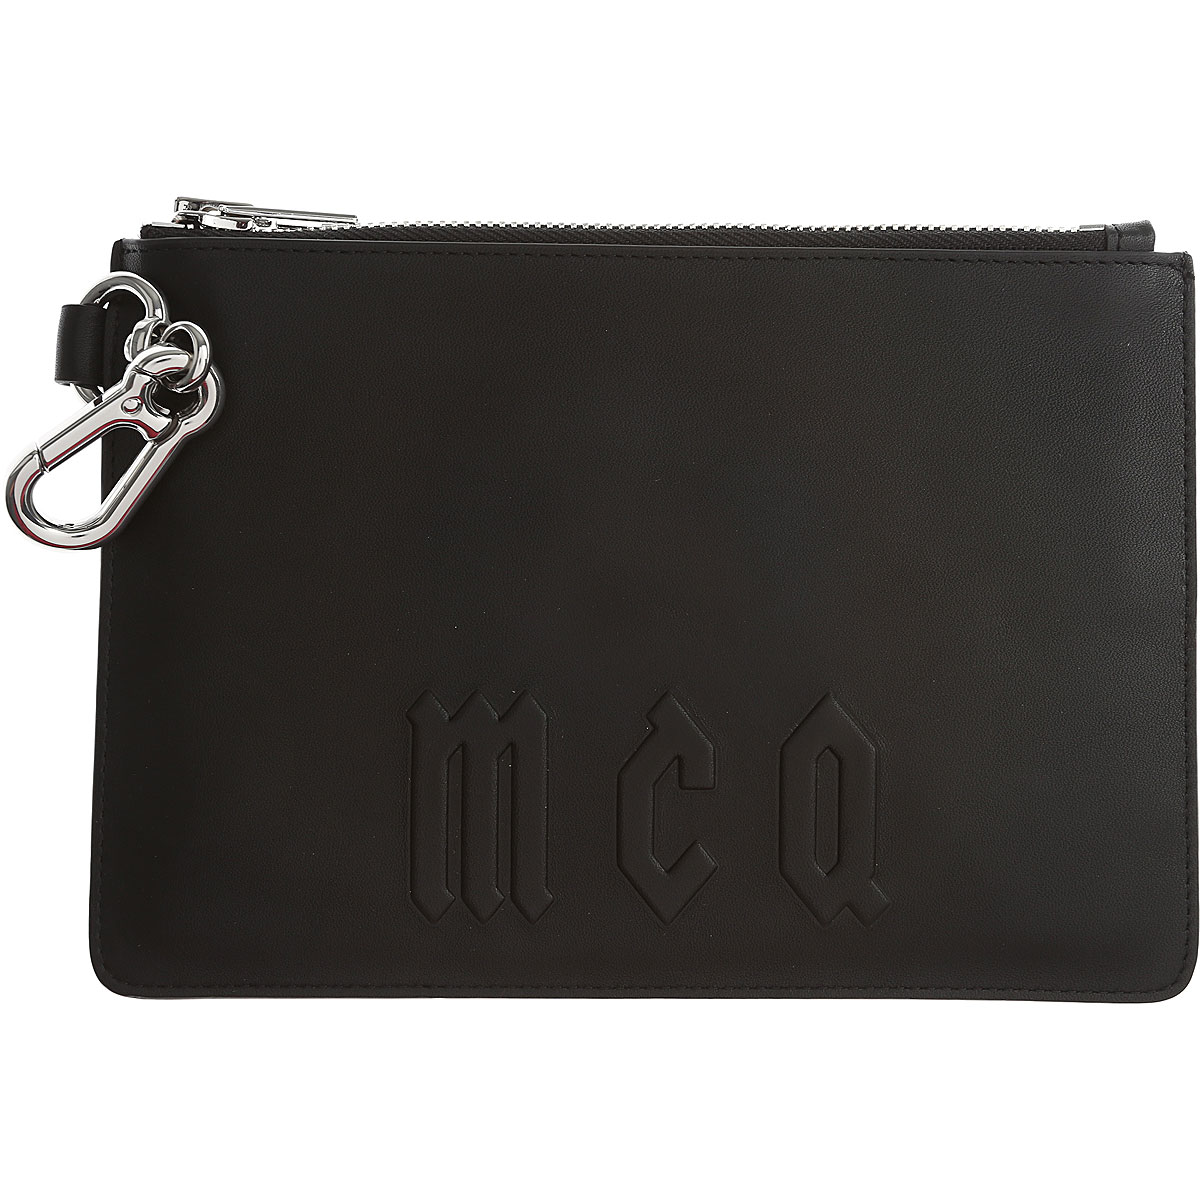 Image of Alexander McQueen McQ Pouches, Black, Leather, 2017